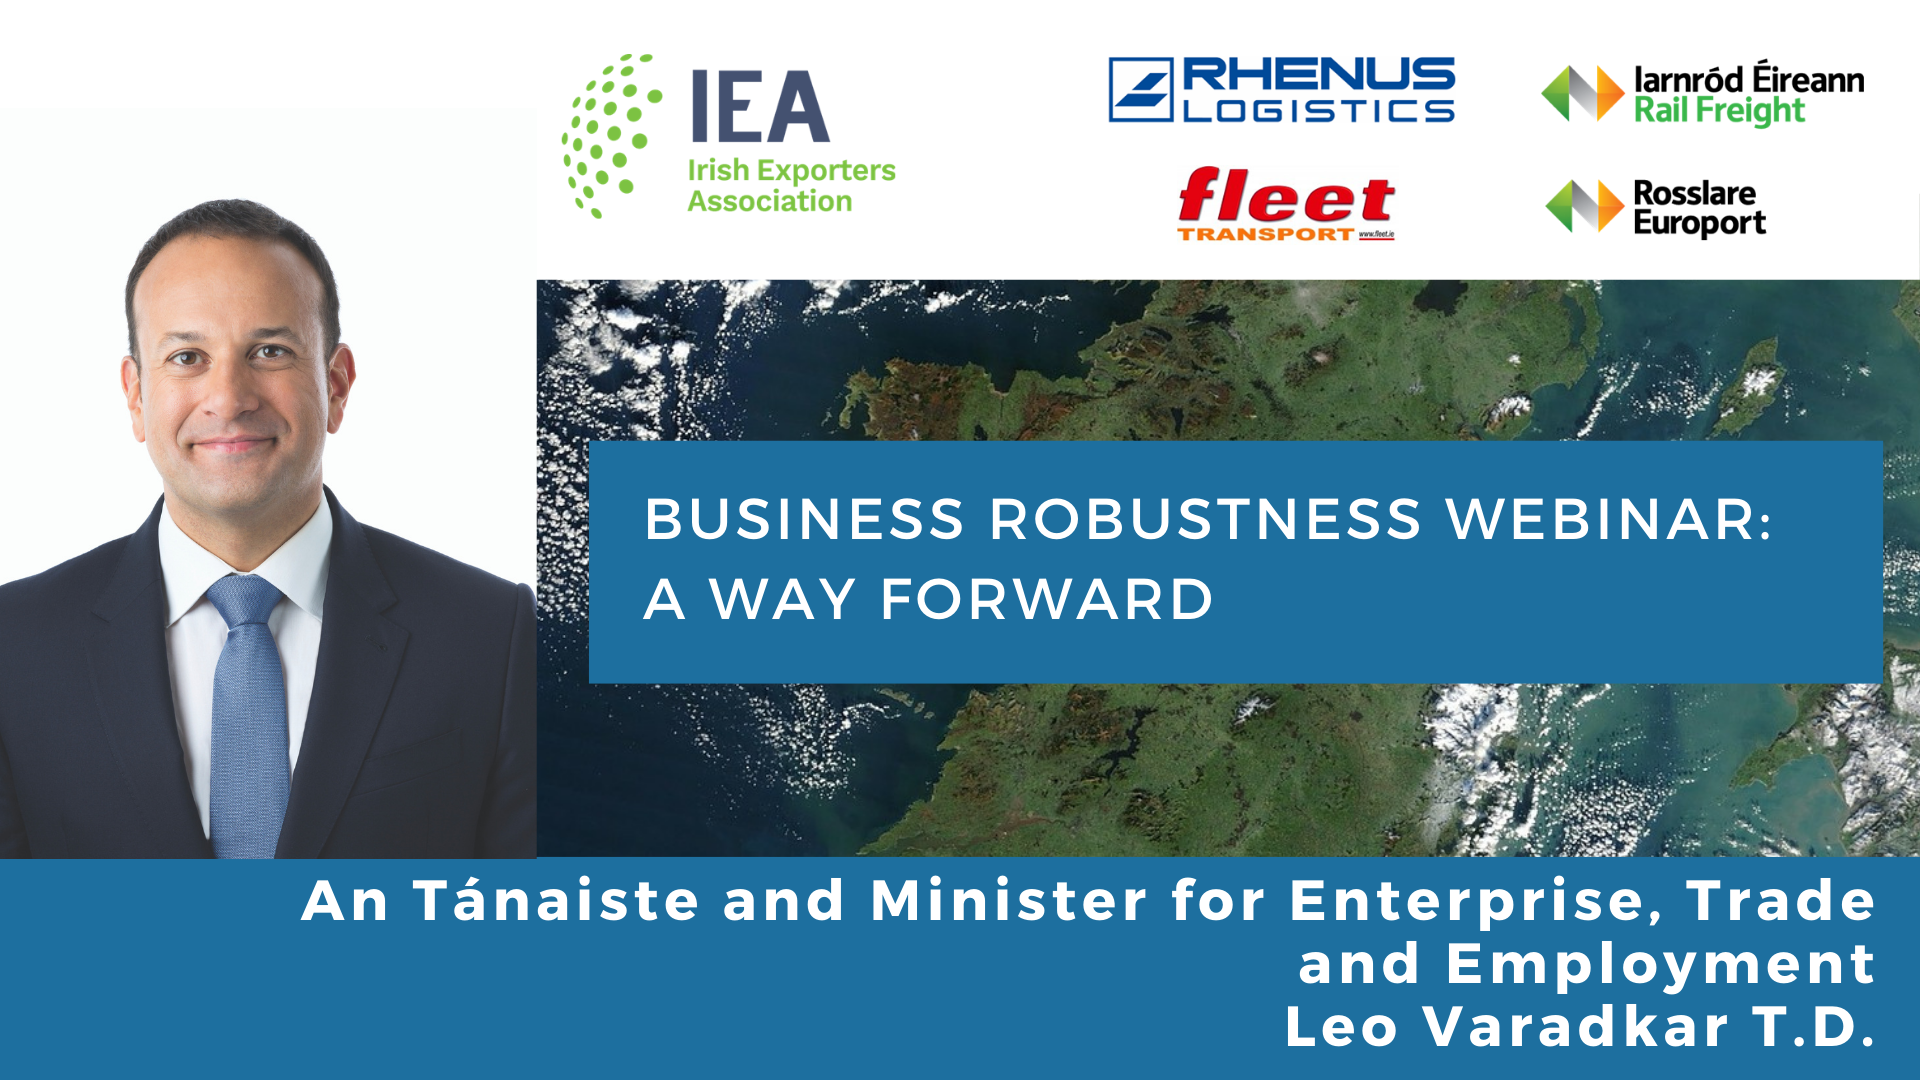 IEA Export Series Webinar | Keynote address by Mr Leo Varadkar T.D., Tánaiste and Minister for Enterprise, Trade and Employment